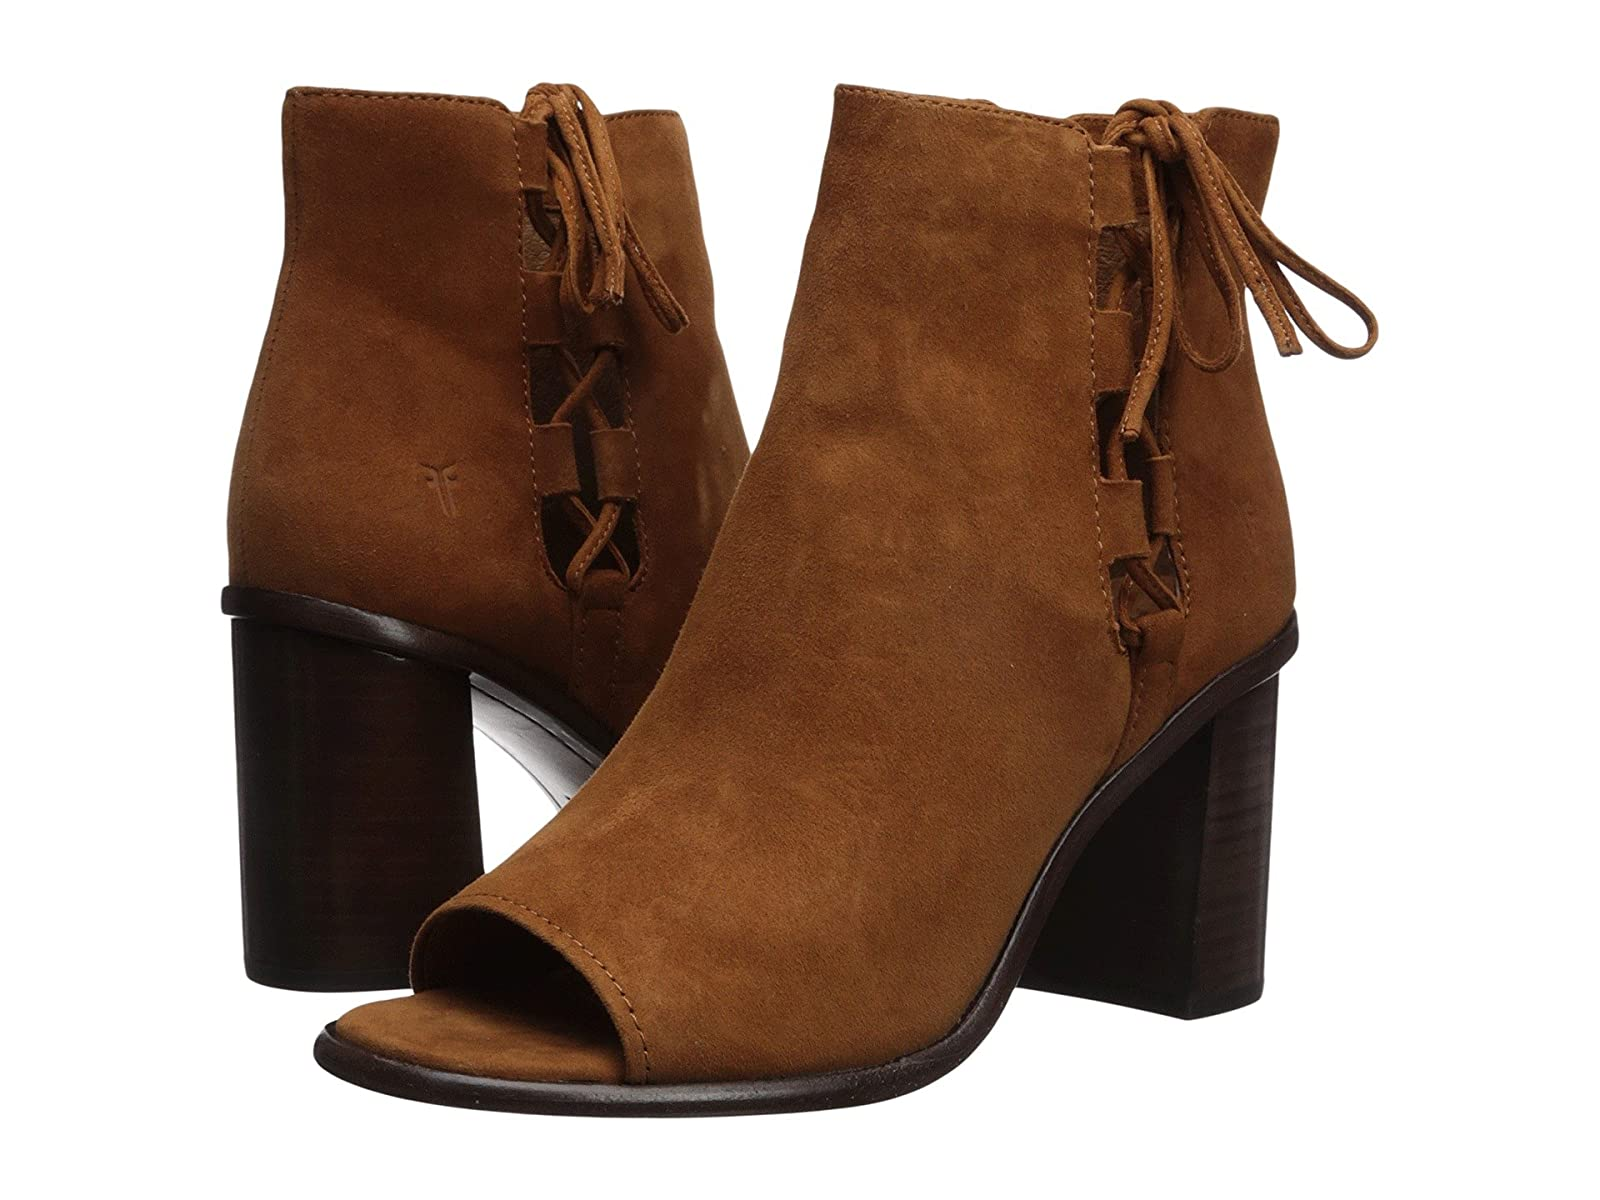 Frye Amy Side GhillieCheap and distinctive eye-catching shoes